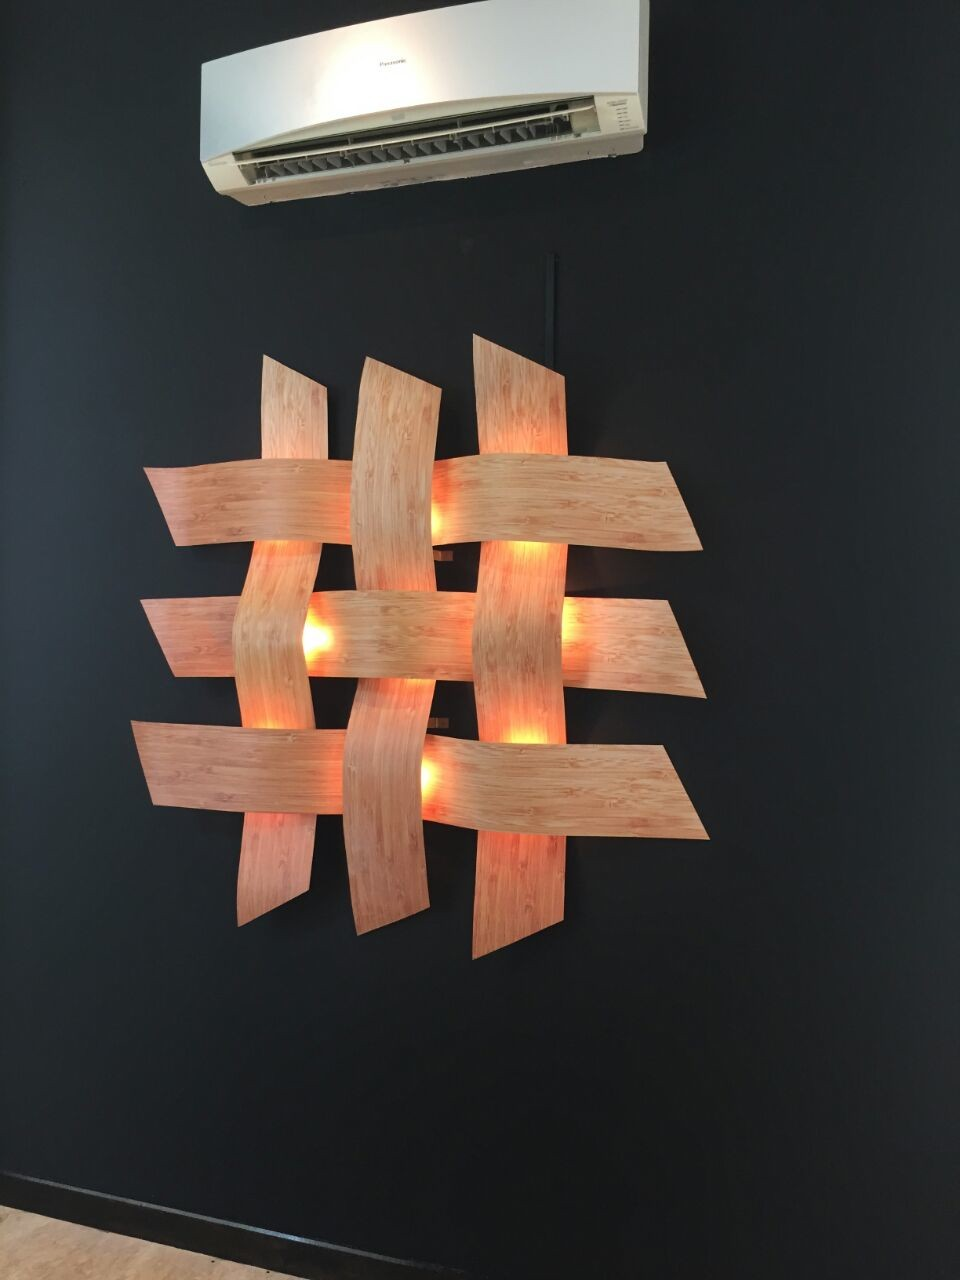 One of the wall lamps designed by Alatas.